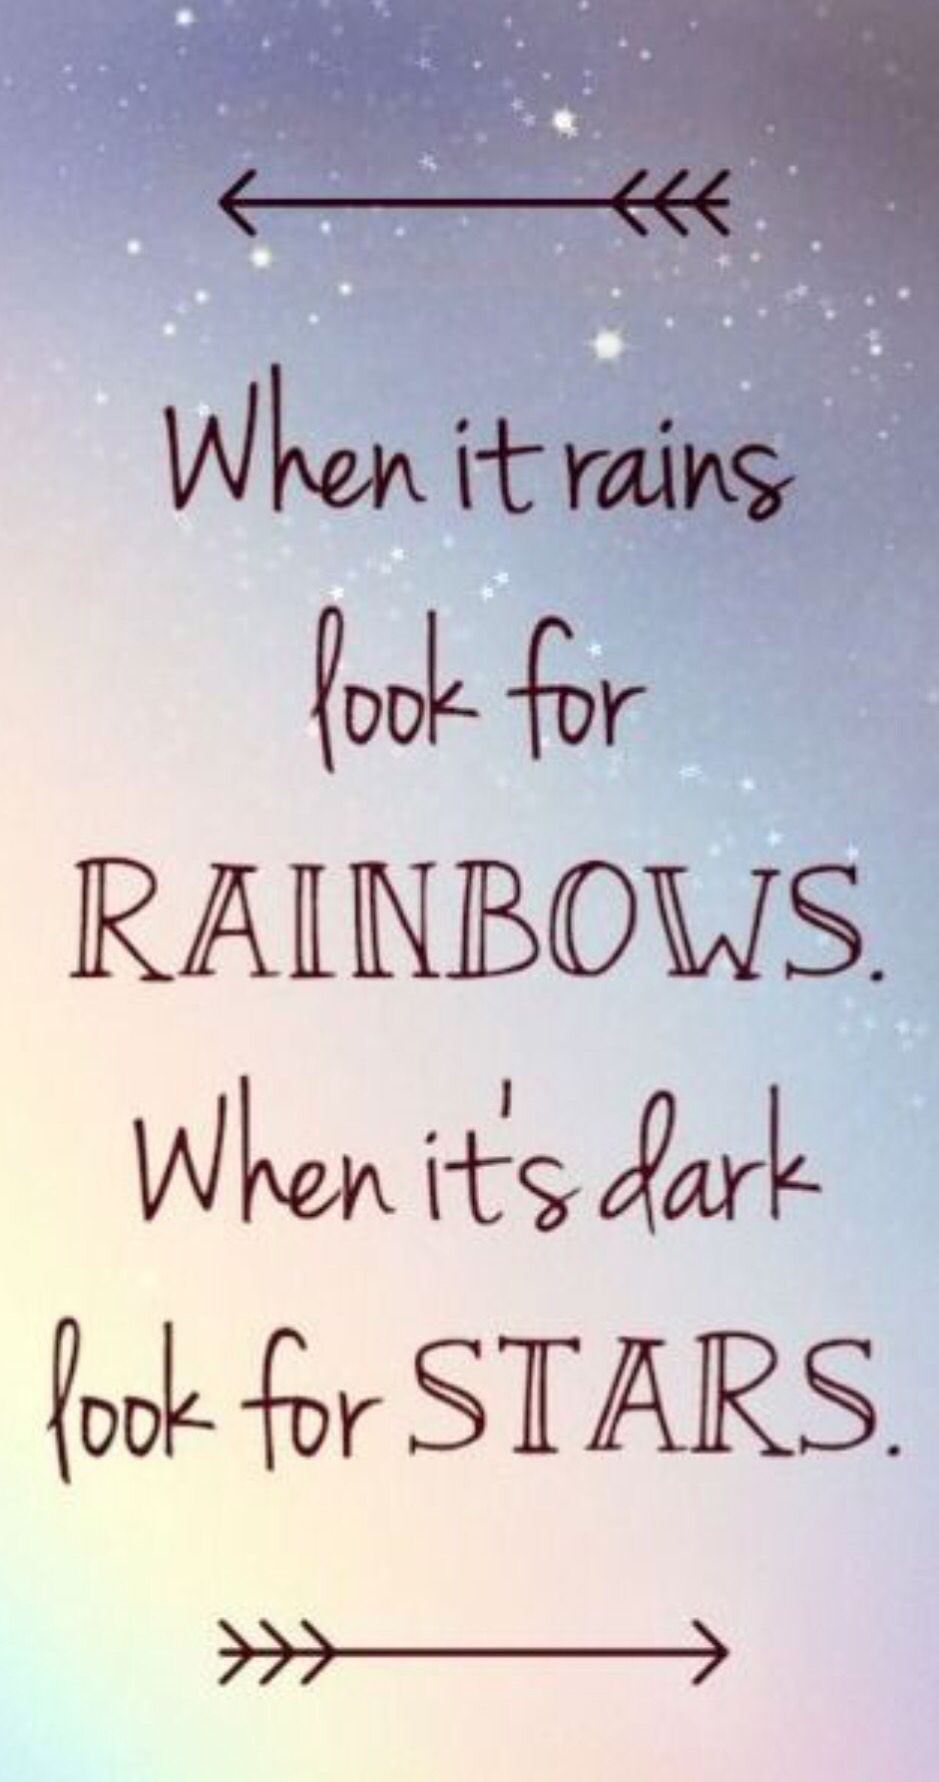 Captivating When It Rains Look For Rainbows, When Its Dark Look For Stars Quote Always  Look For The Brighter Side Of Things, Since After Rain There Are Always  Rainbows, ...